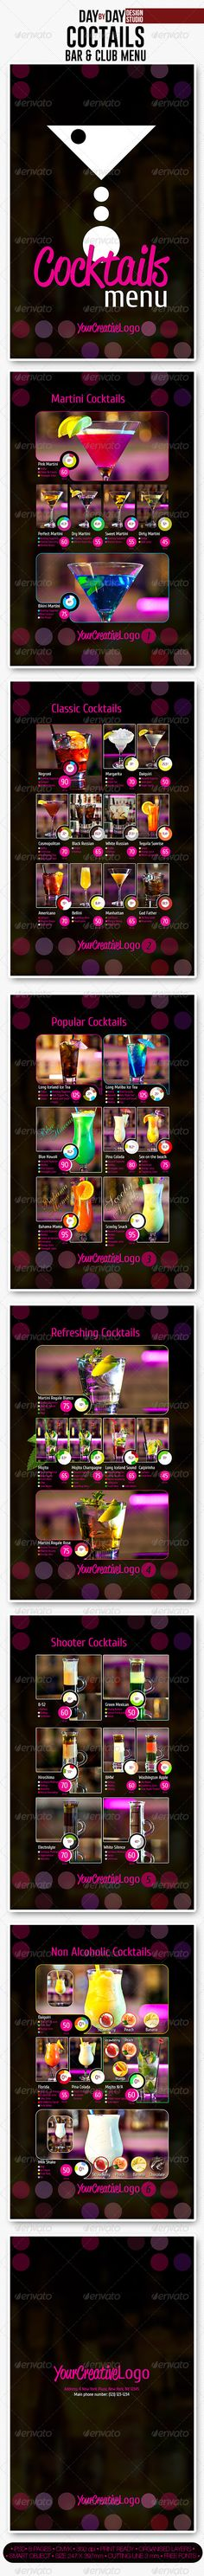 Cocktail Drinks Menu Drink menu, Menu and Food menu - bar menu template